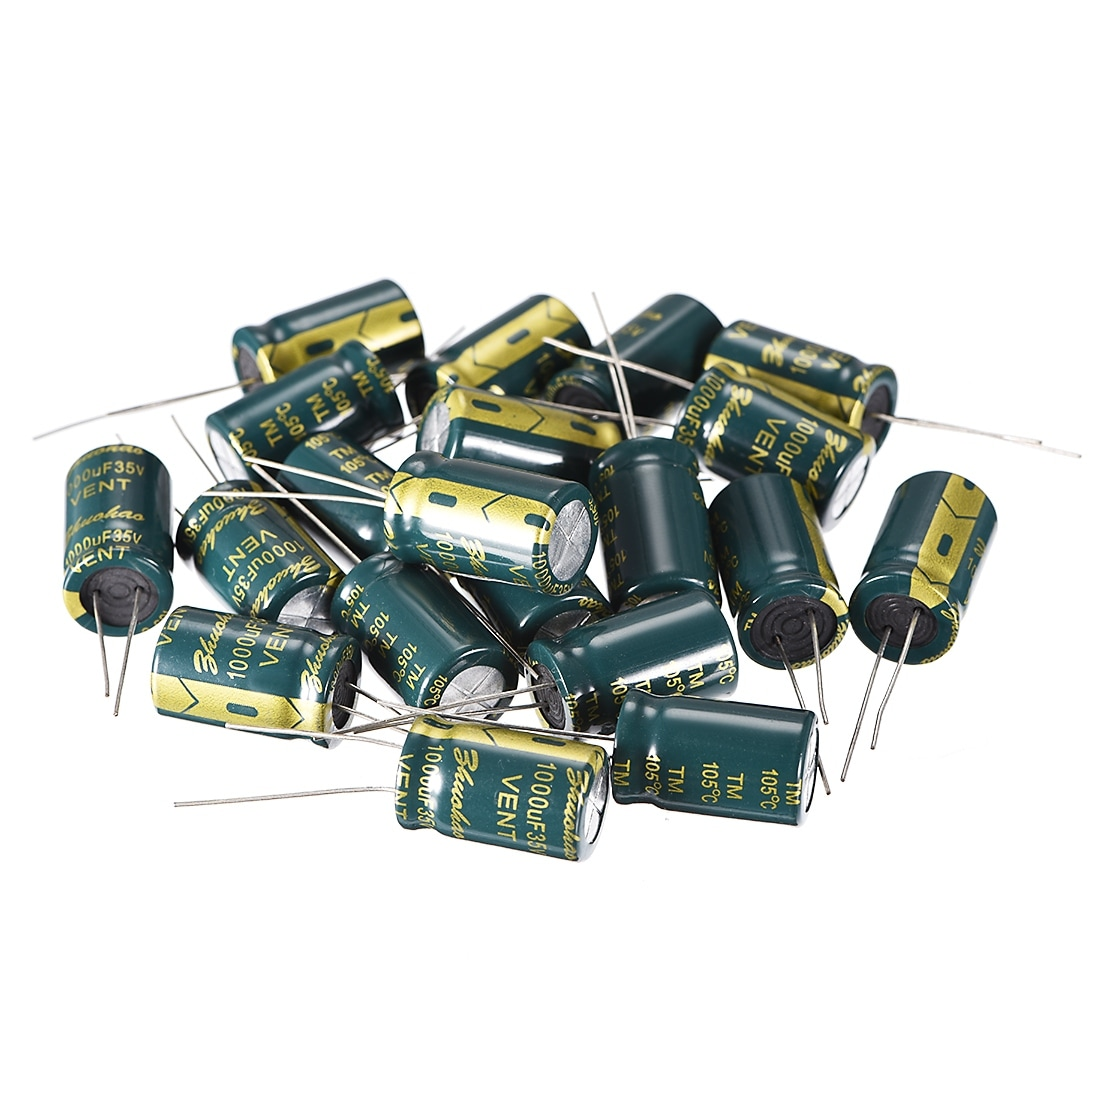 Capacitors   1000@35v 105 ºC Radial  Pack of 10ea *SHIPS FROM THE USA*